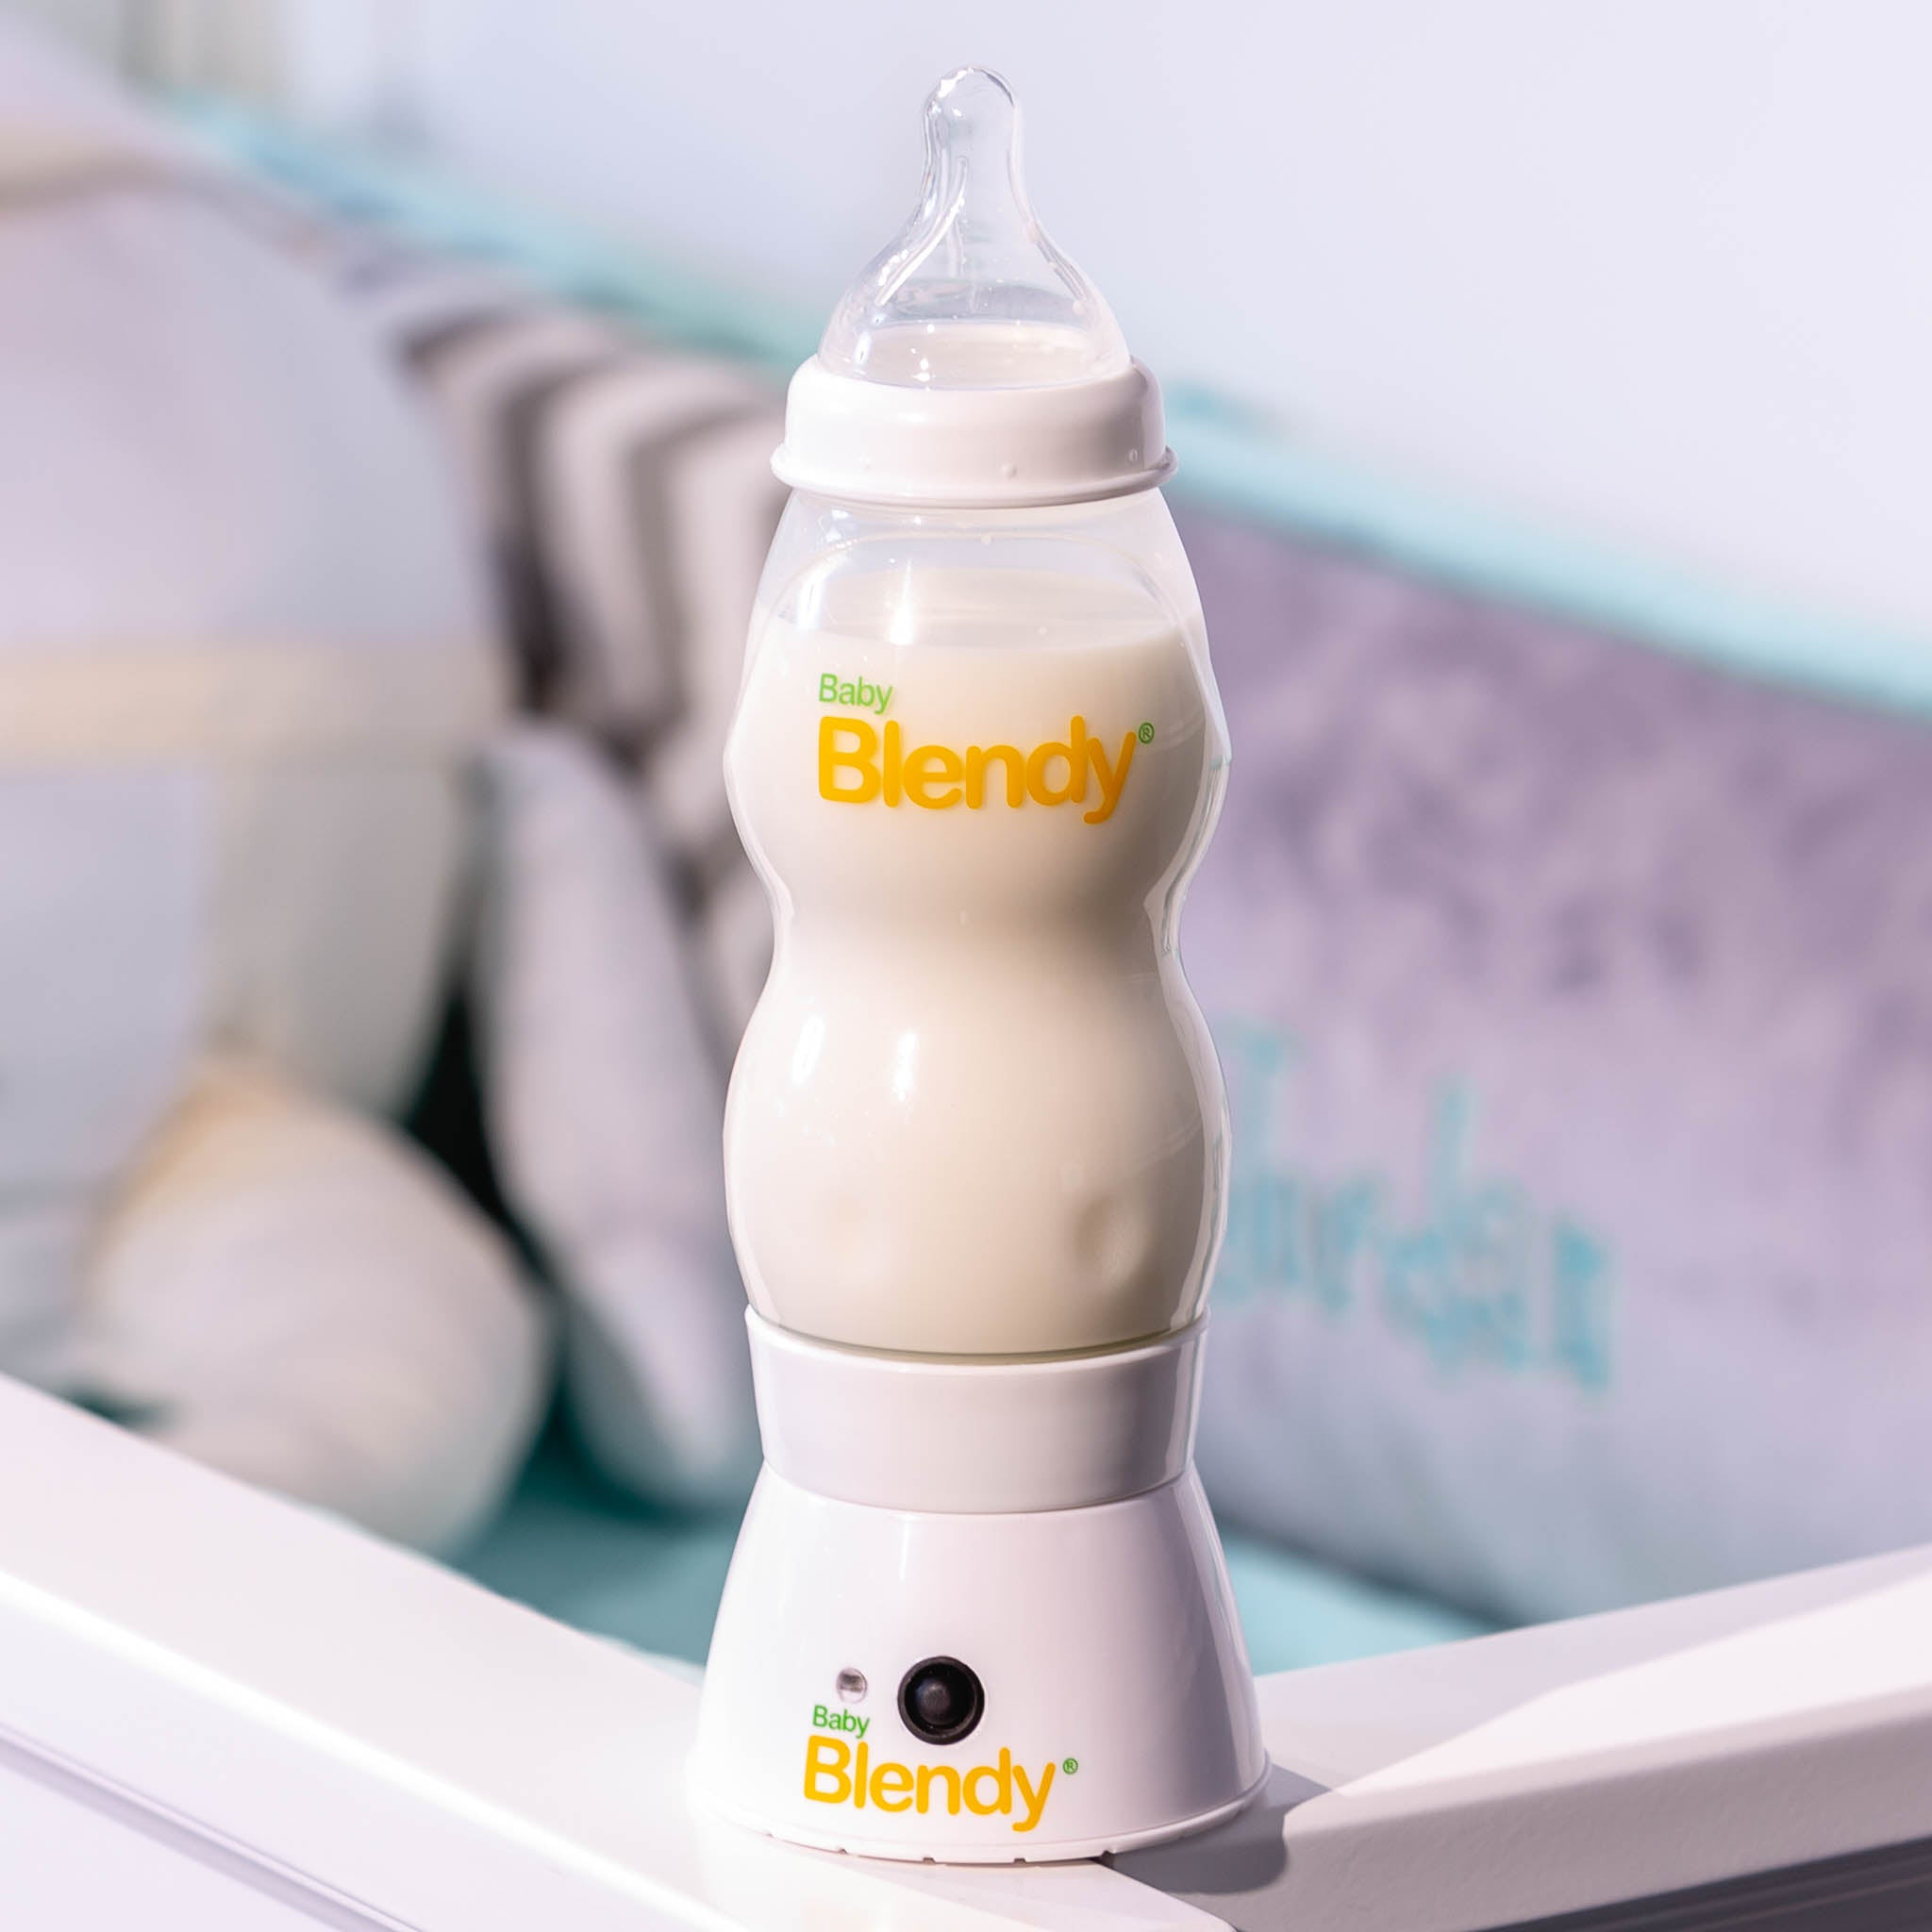 award winning baby bottle (2)